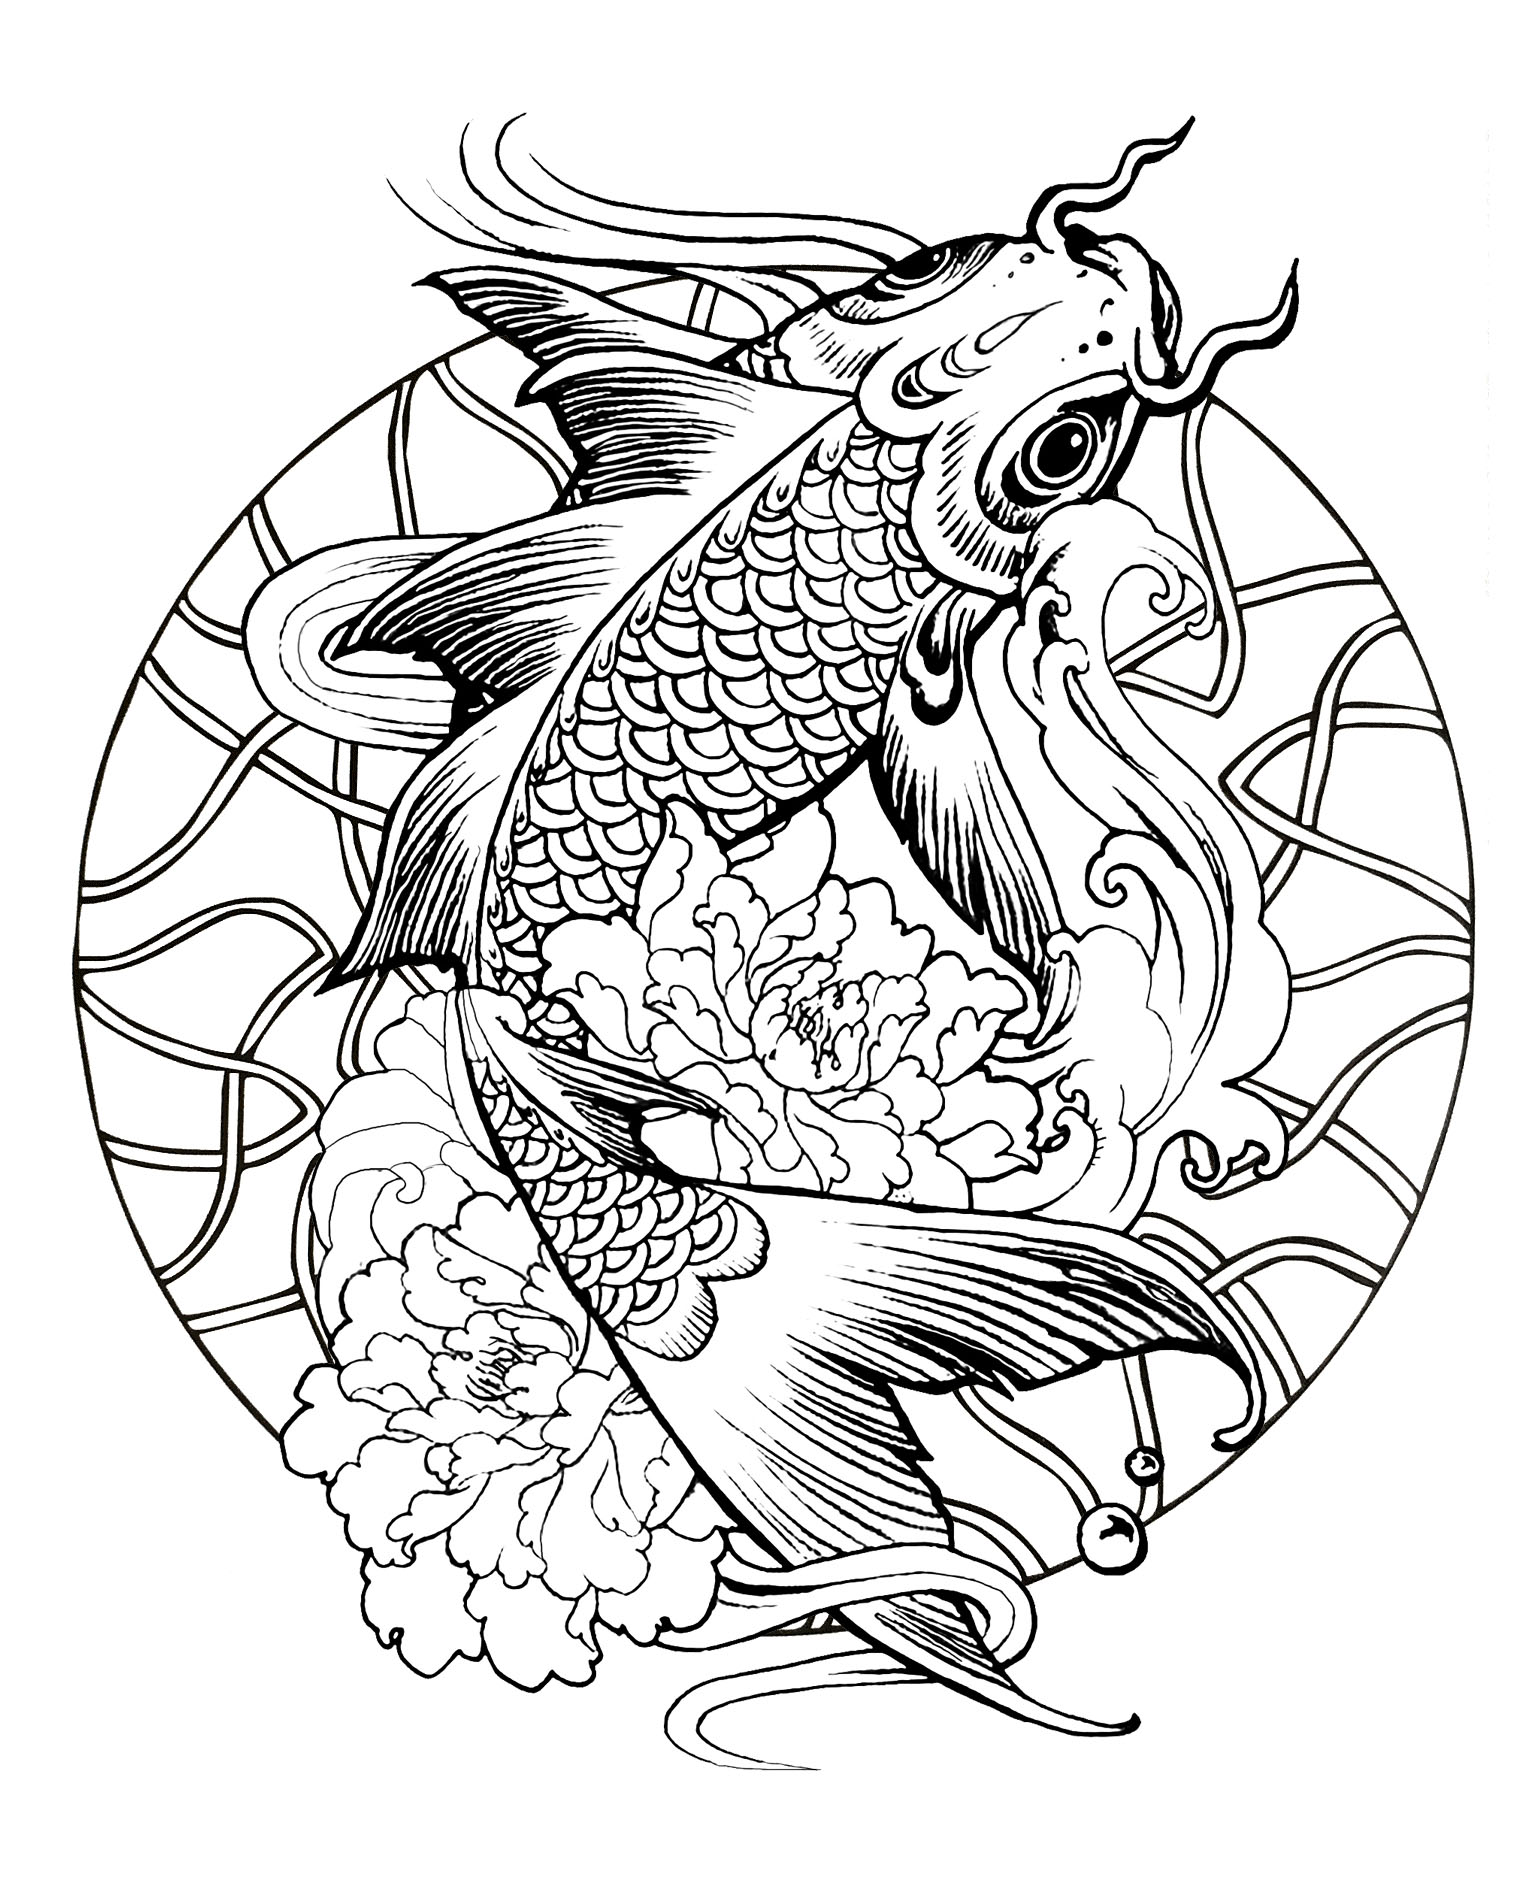 Mandala fish carp | Mandalas - Coloring pages for adults | JustColor